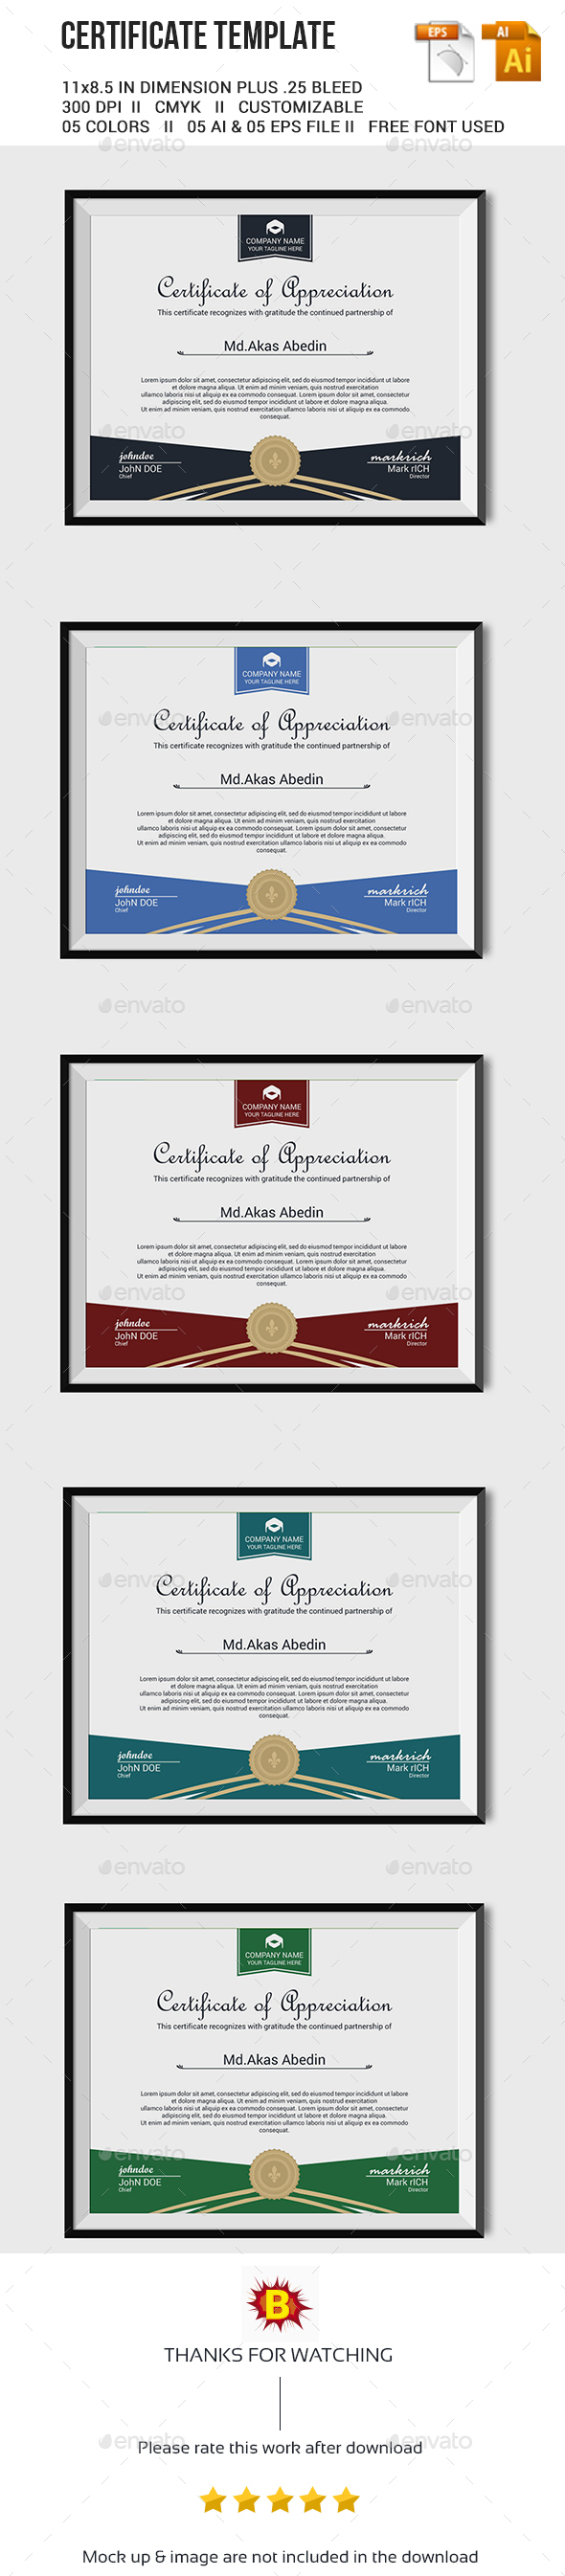 Certificate Template Vector Eps Ai Download Here Http